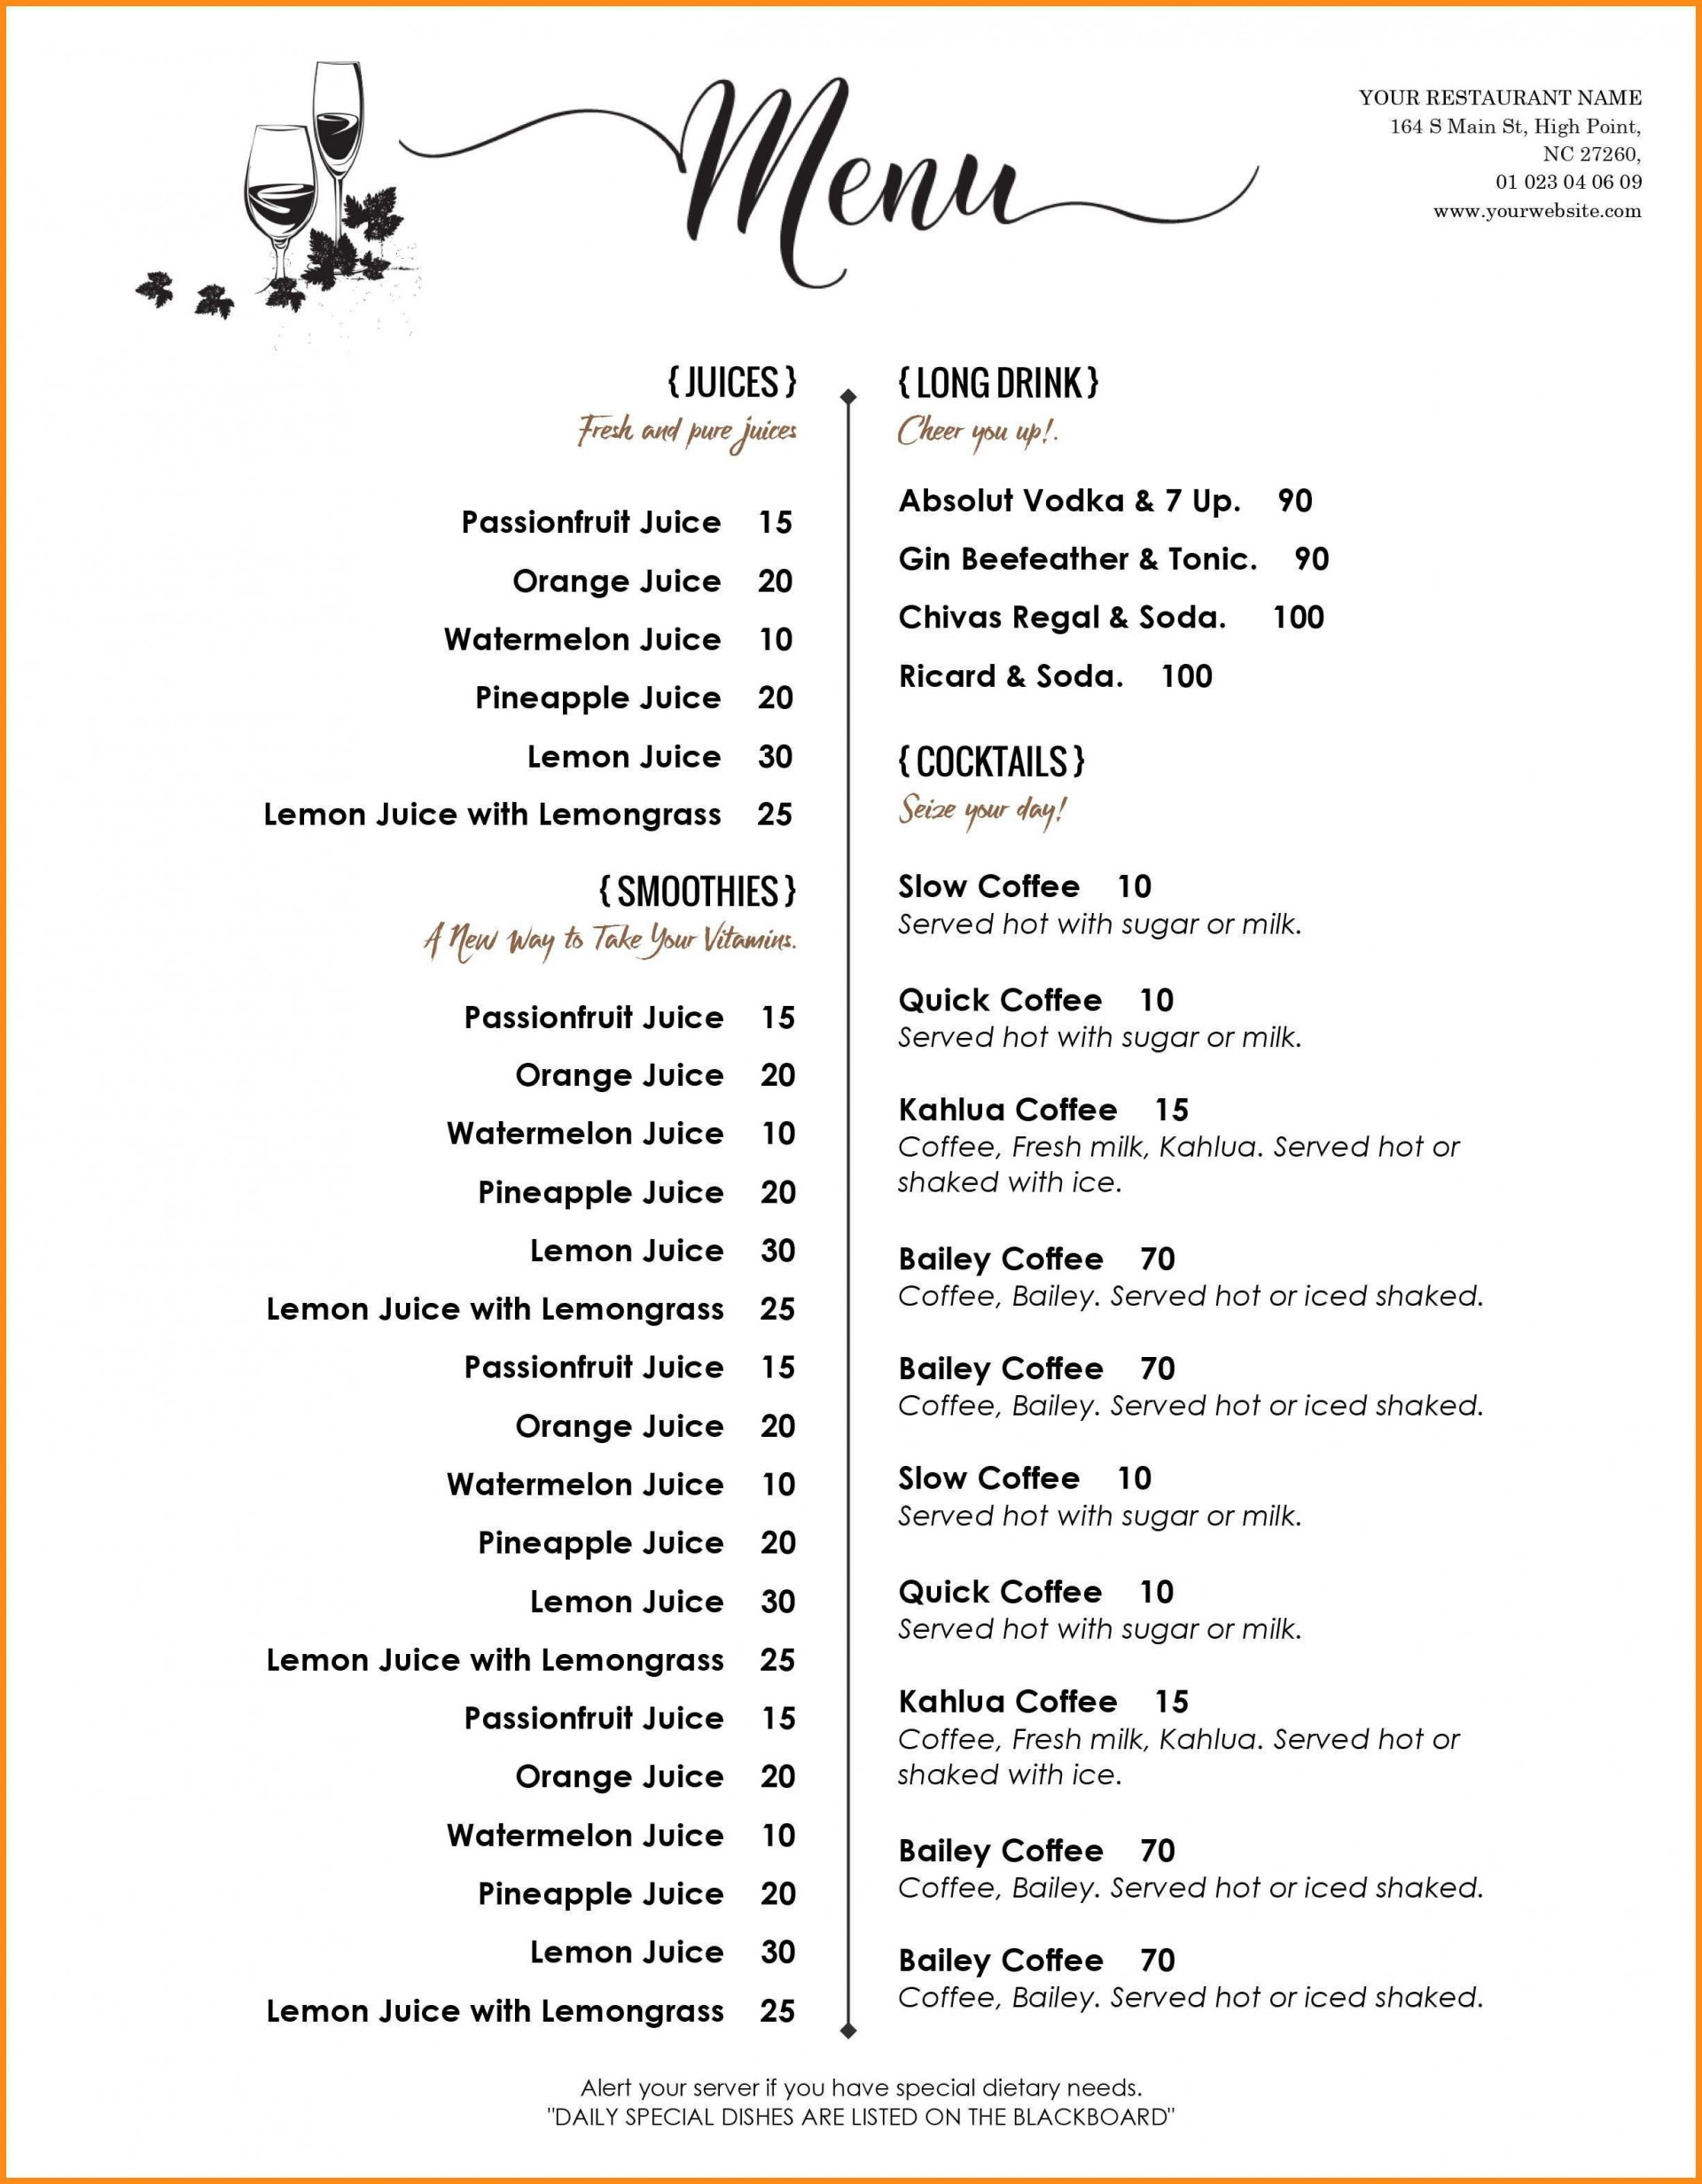 000 Amazing Menu Template Free Download Word High Resolution  Dinner Party Wedding1920